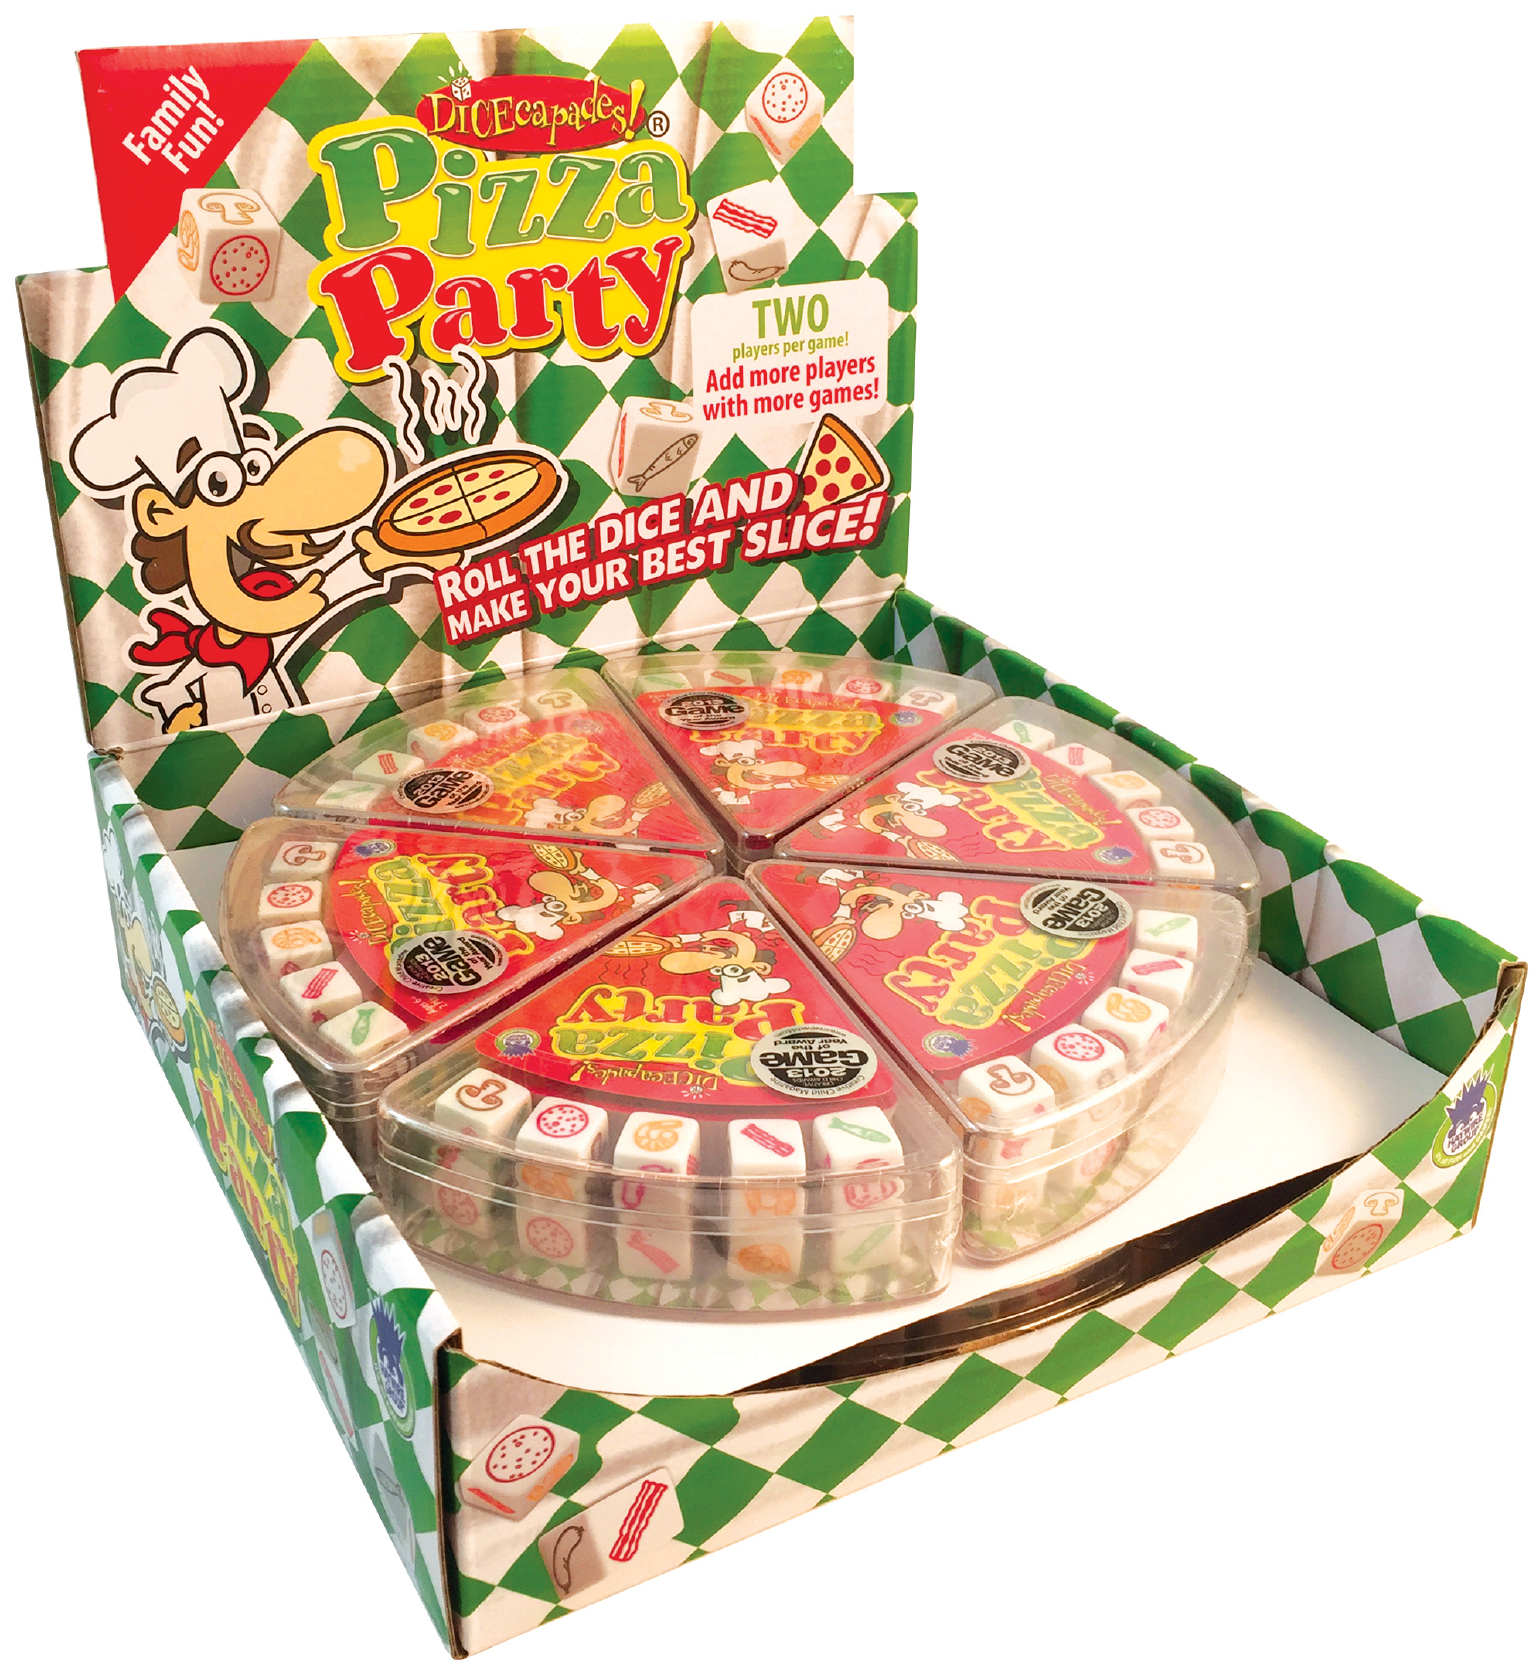 01089_735-PIZZAPARTY_PDQ